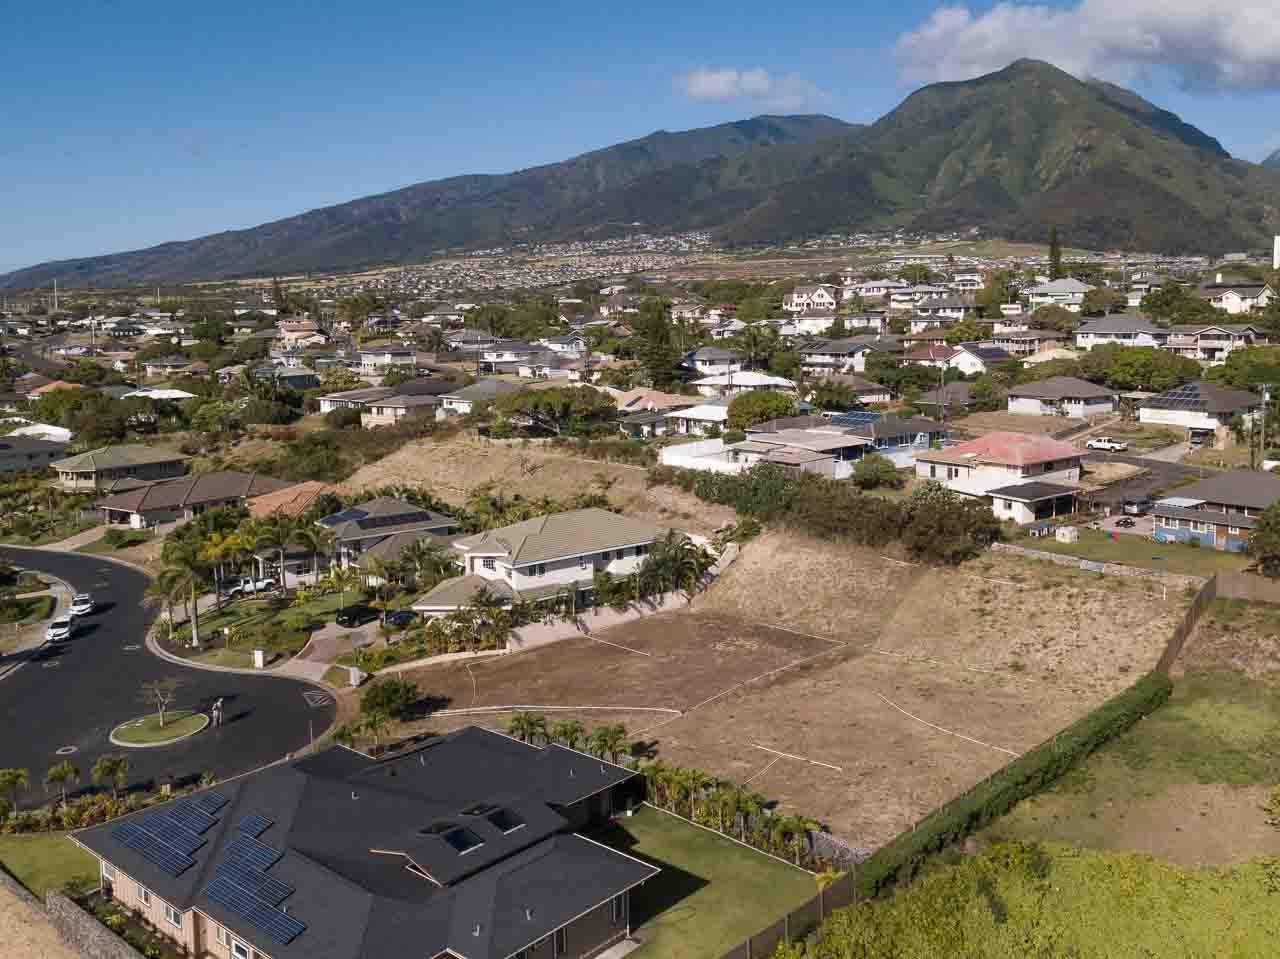 Photo of 68 Keoneloa St, Wailuku, HI 96793 (MLS # 387089)